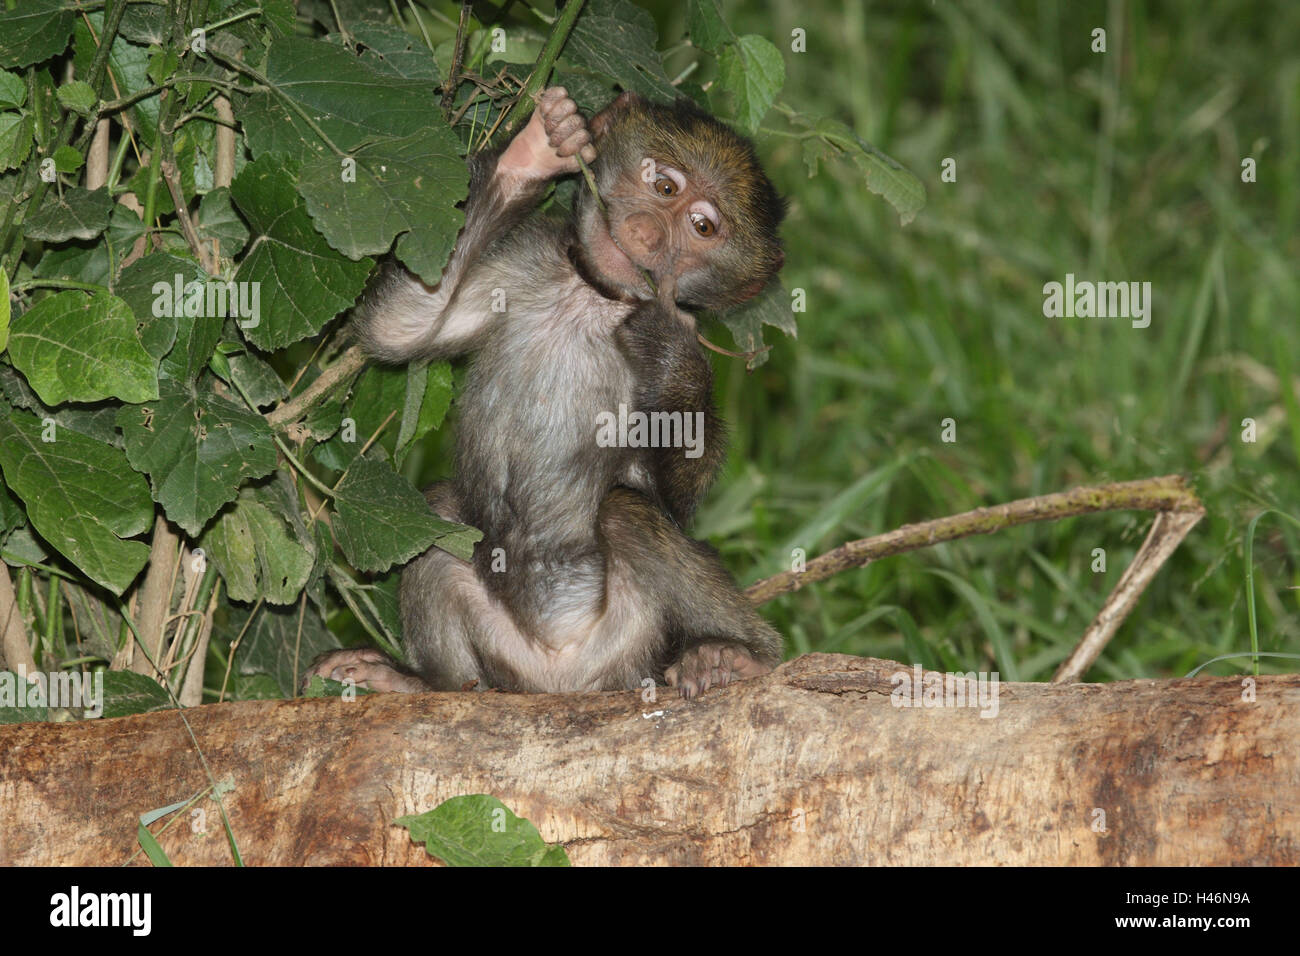 Bear's baboon young animal plays with twig, - Stock Image